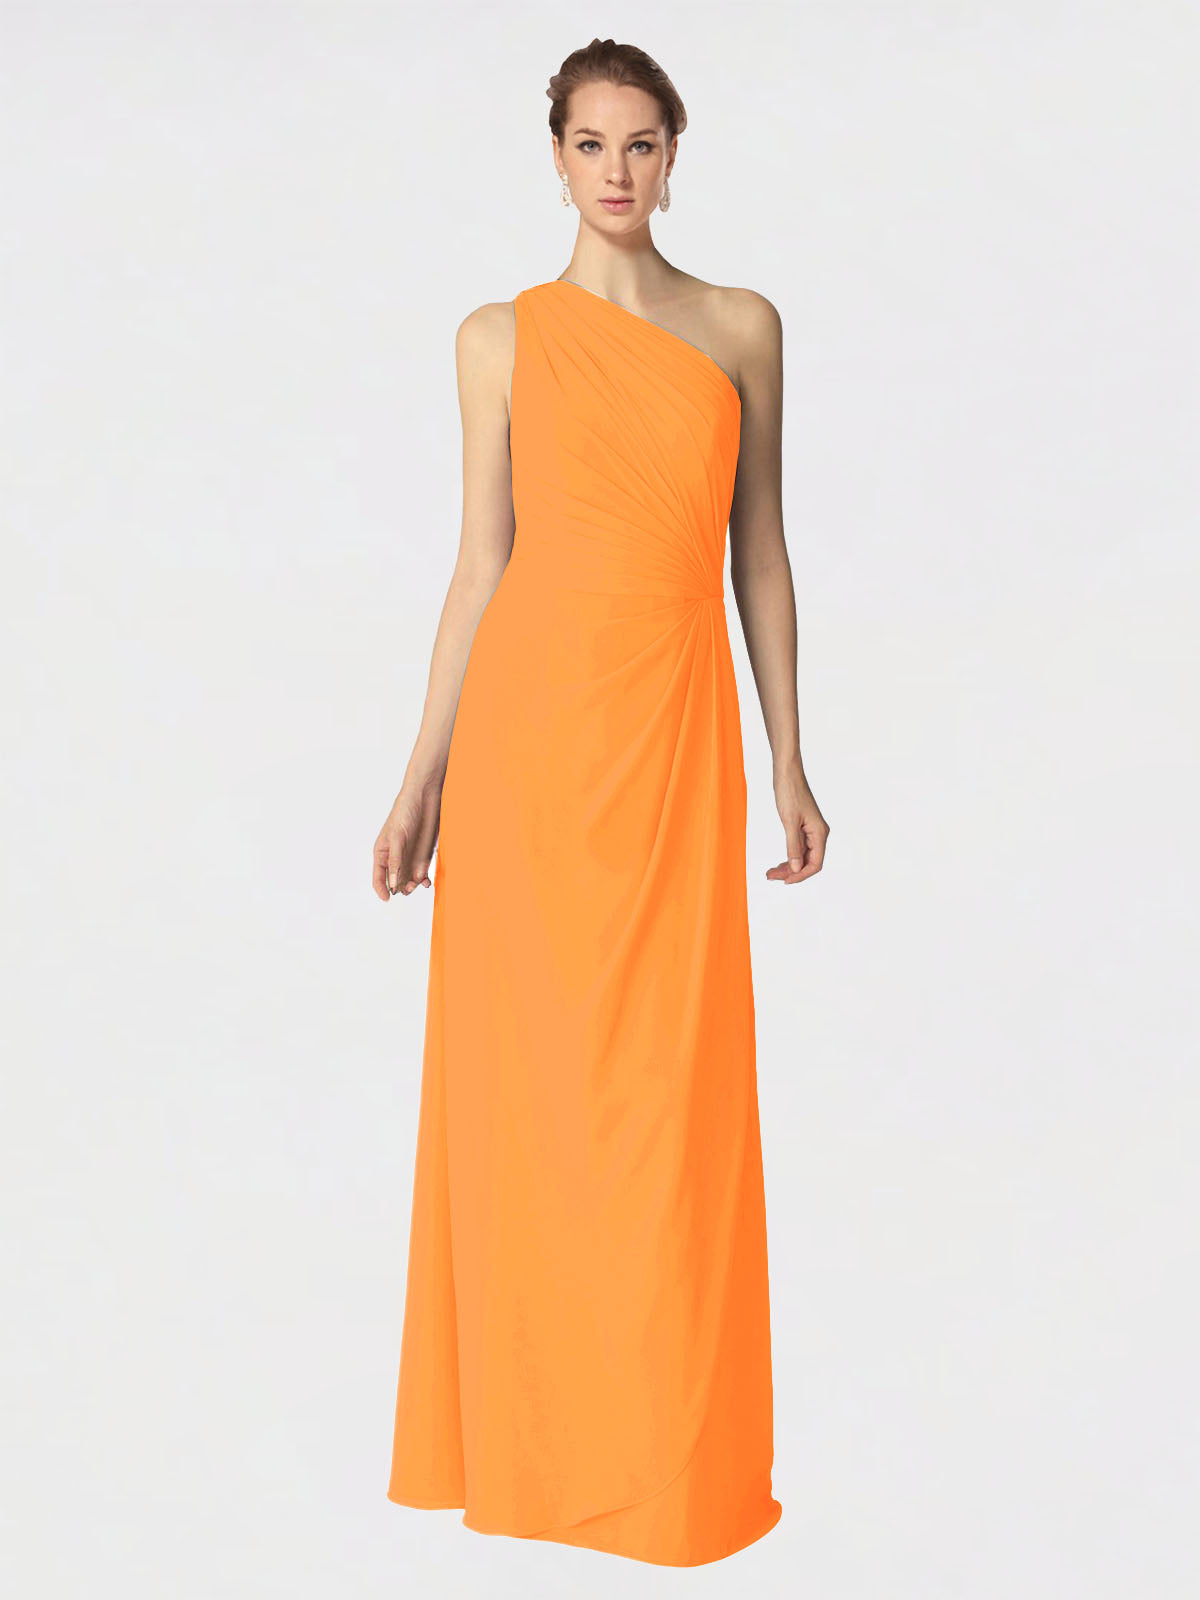 Long A-Line One Shoulder Sleeveless Orange Chiffon Bridesmaid Dress Aurora